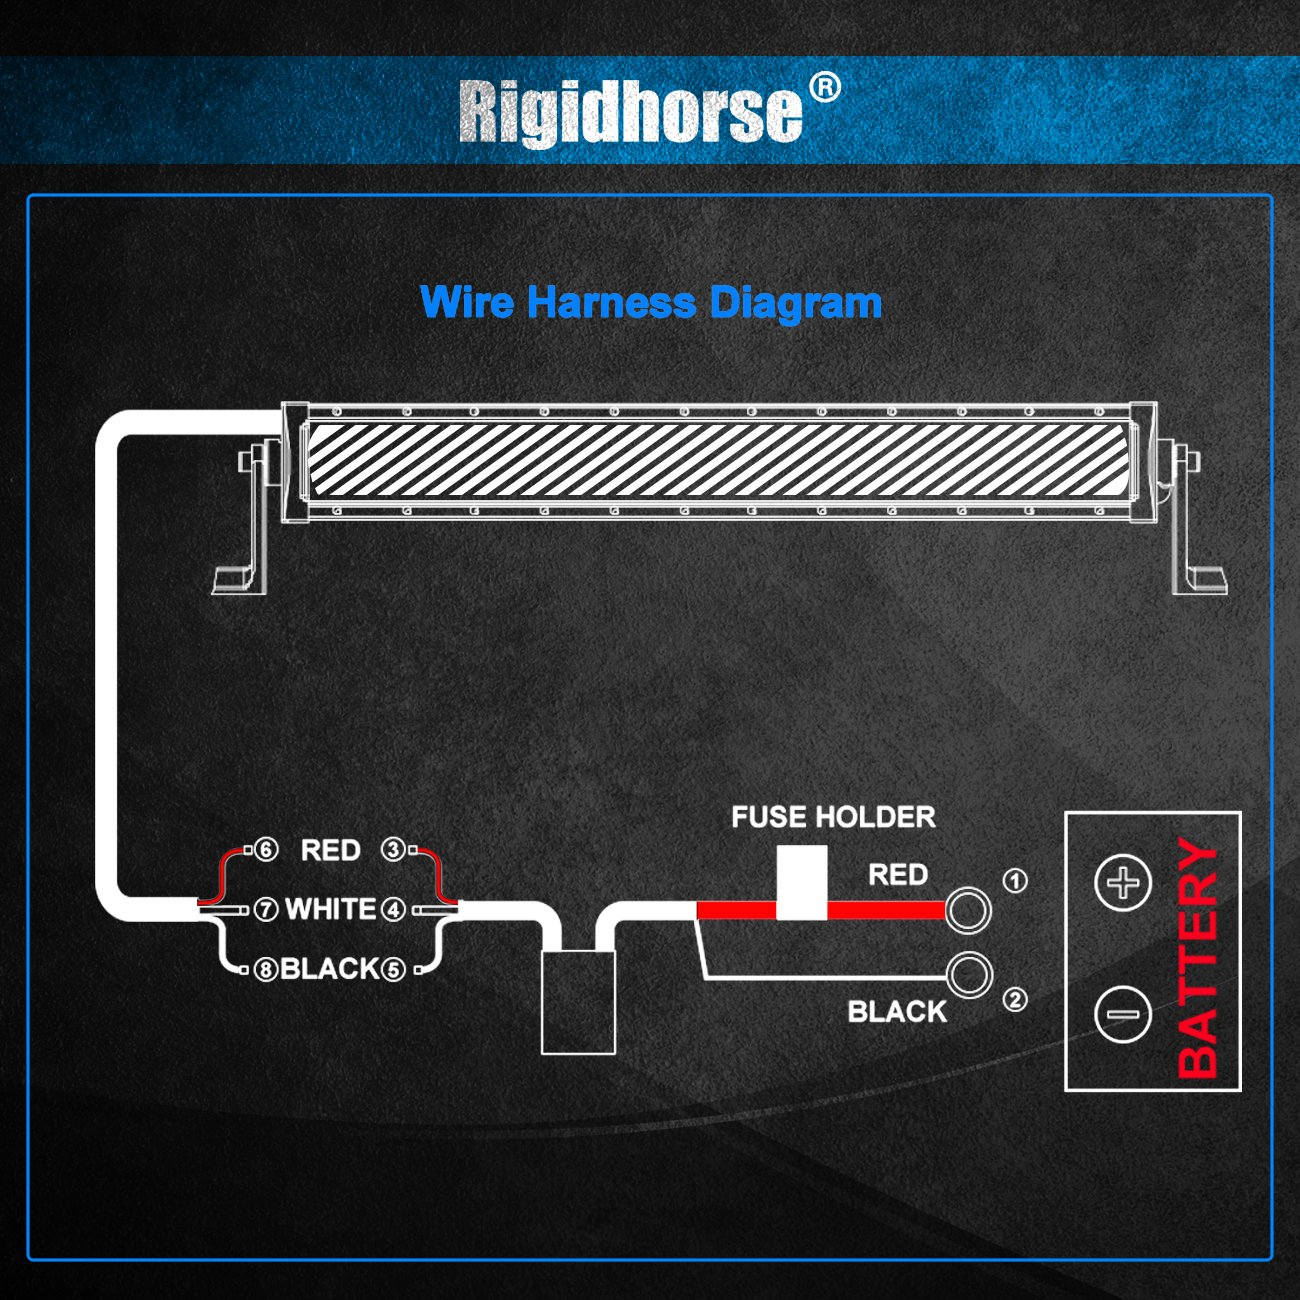 Light Bar Wiring Harness Rigidhorse Remote Control Lightbar Kit For Multi Color Led Universal Fitment Accessories 96 Inch